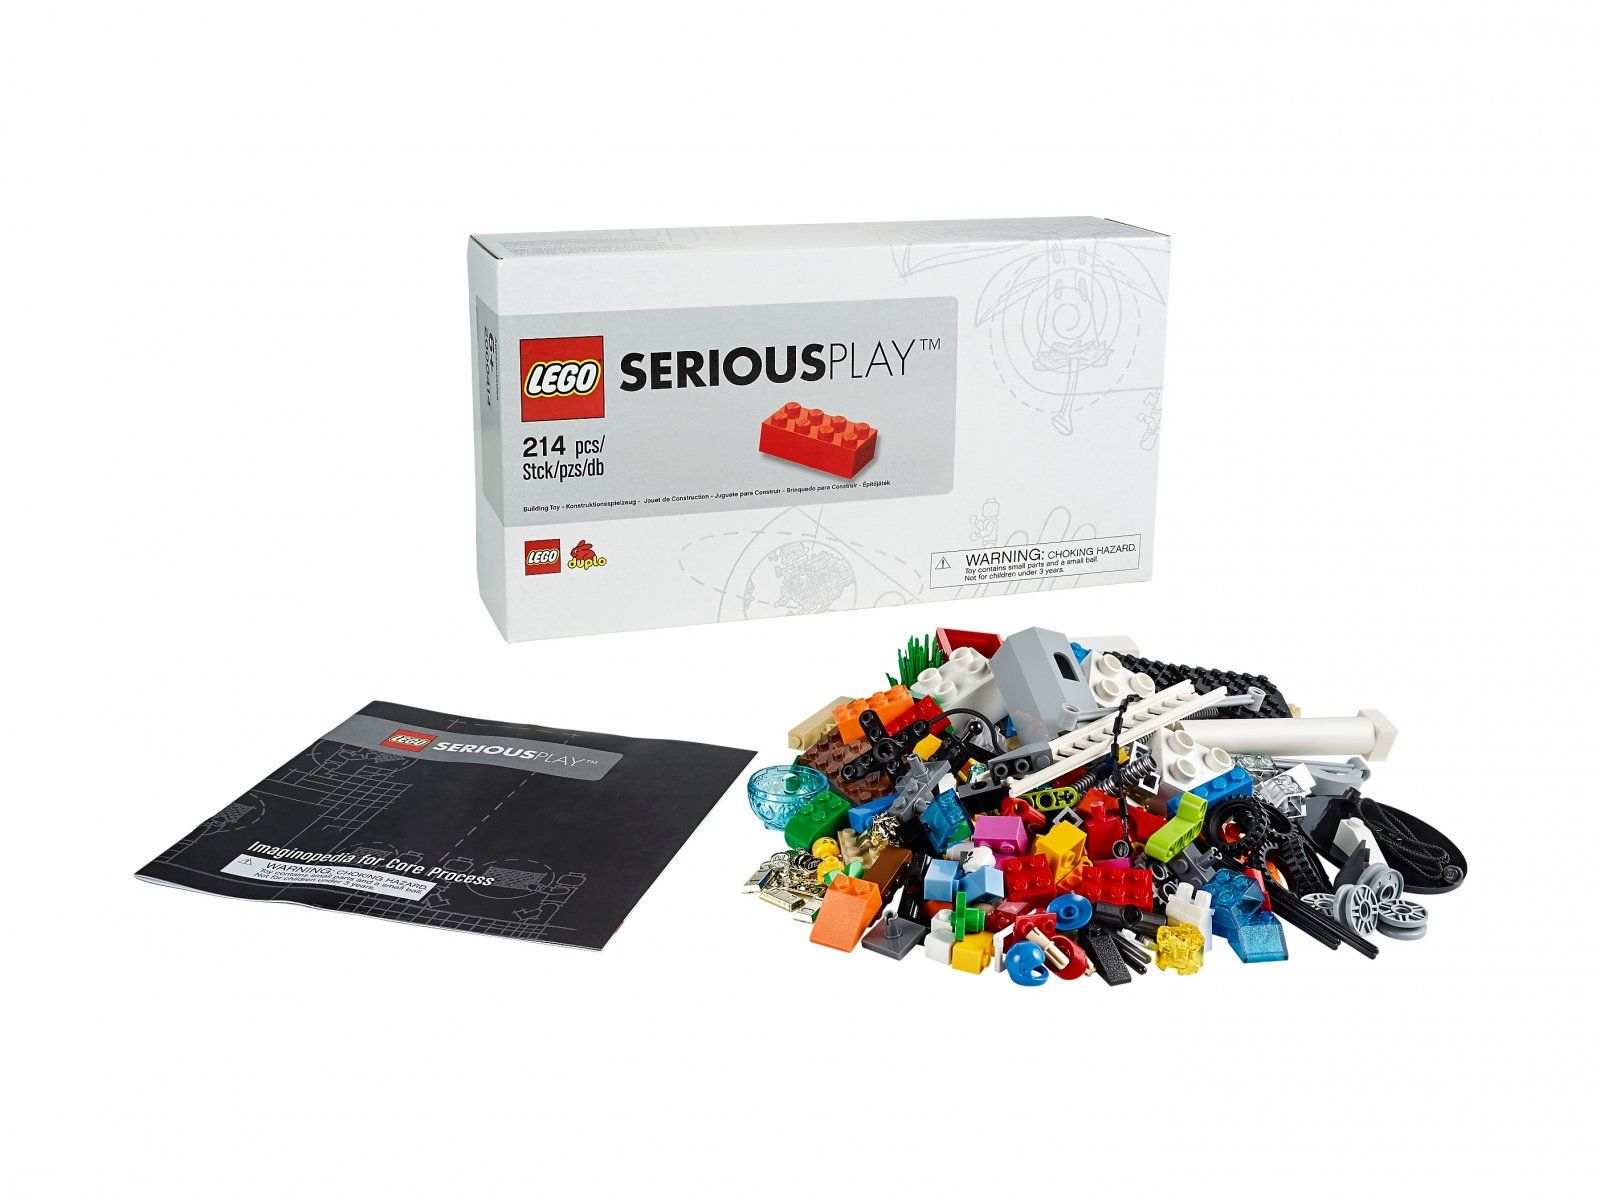 LEGO SERIOUS PLAY® 2000414 Starter Kit